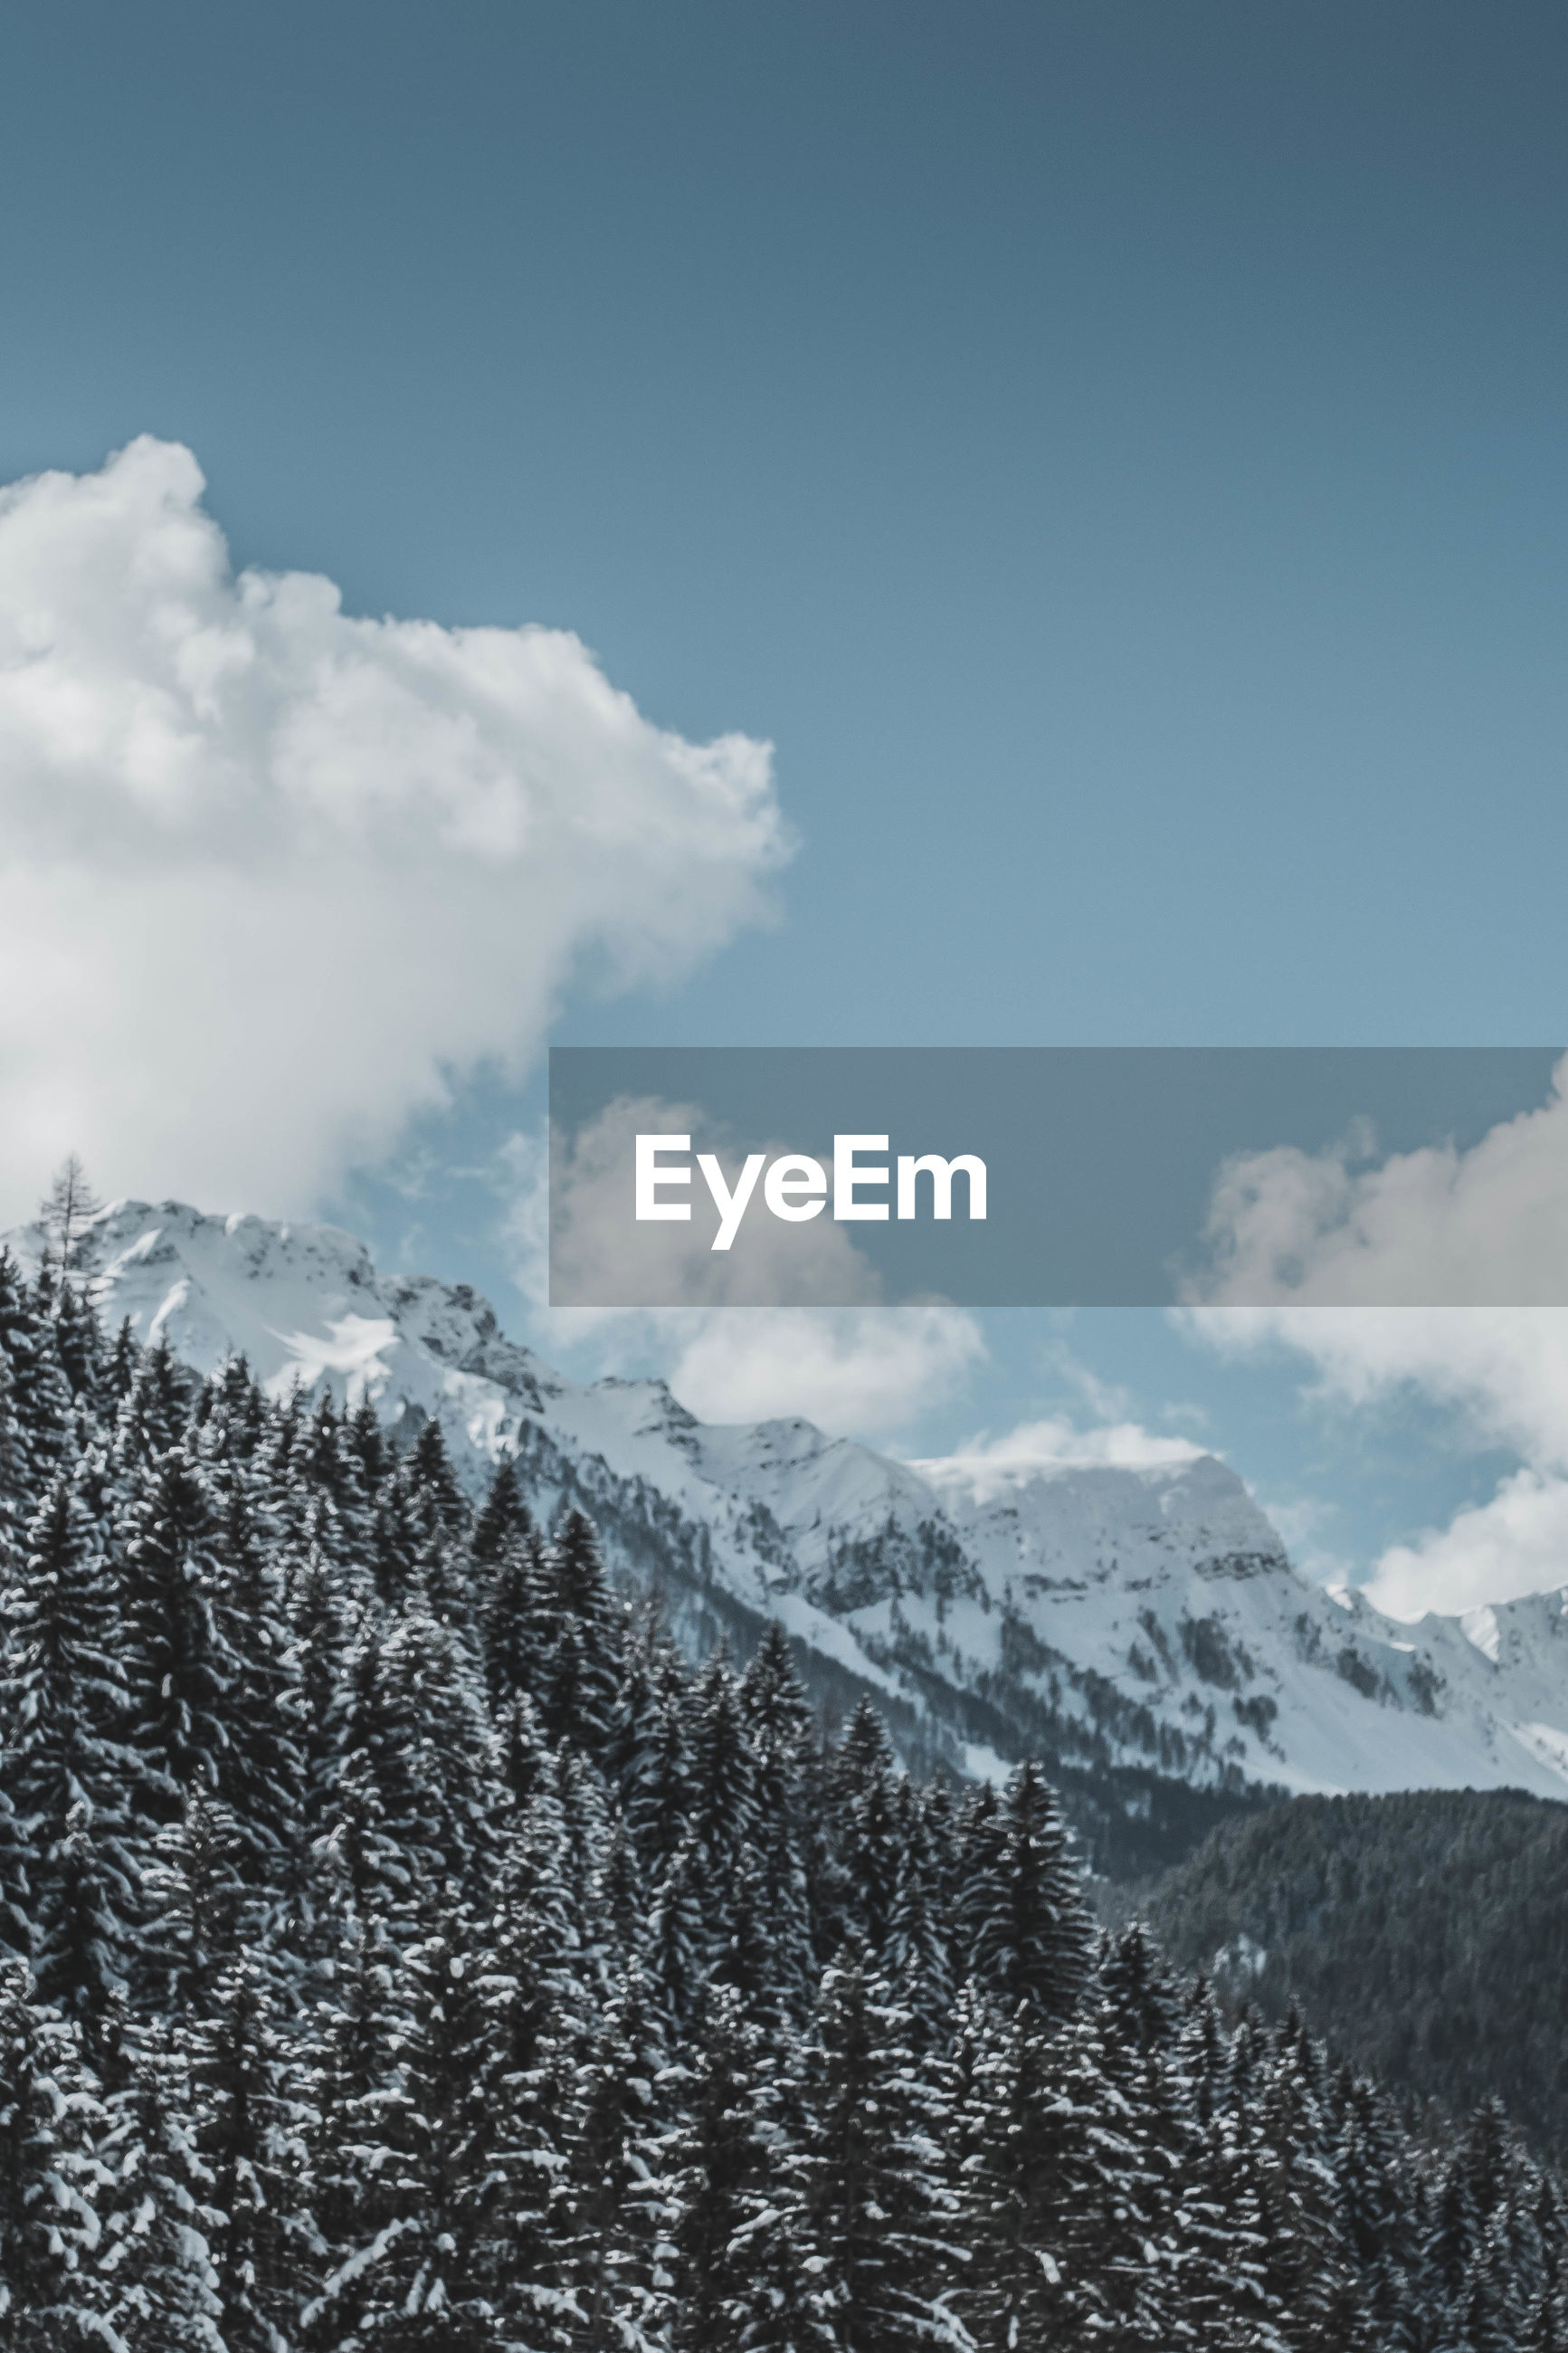 Snow covered trees on mountains against sky